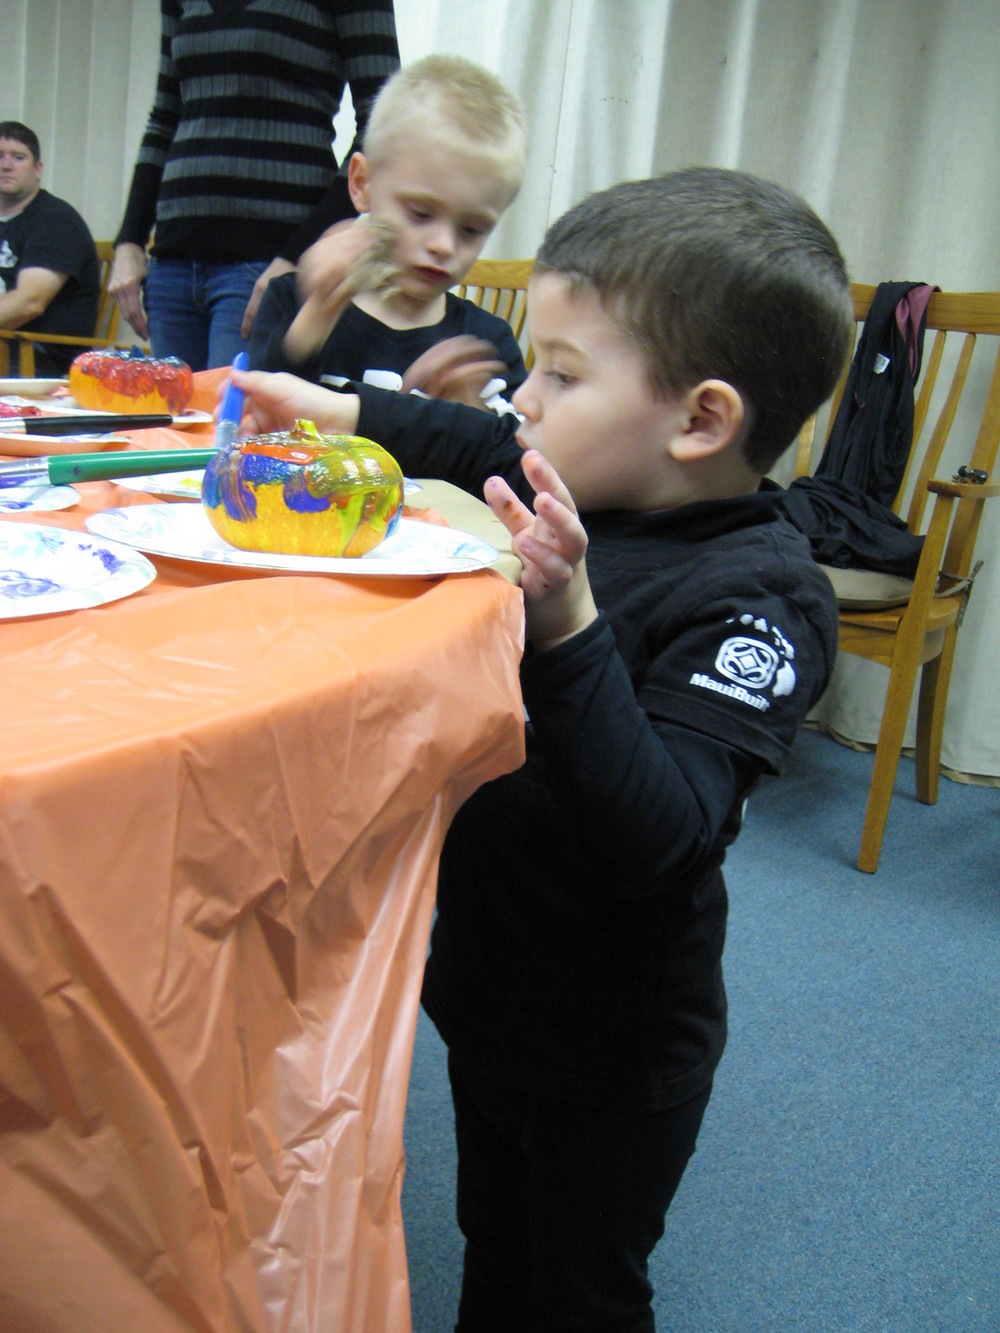 Bellingham Halloween Fall Festival St Pauls Church Oct 2015 022.JPG